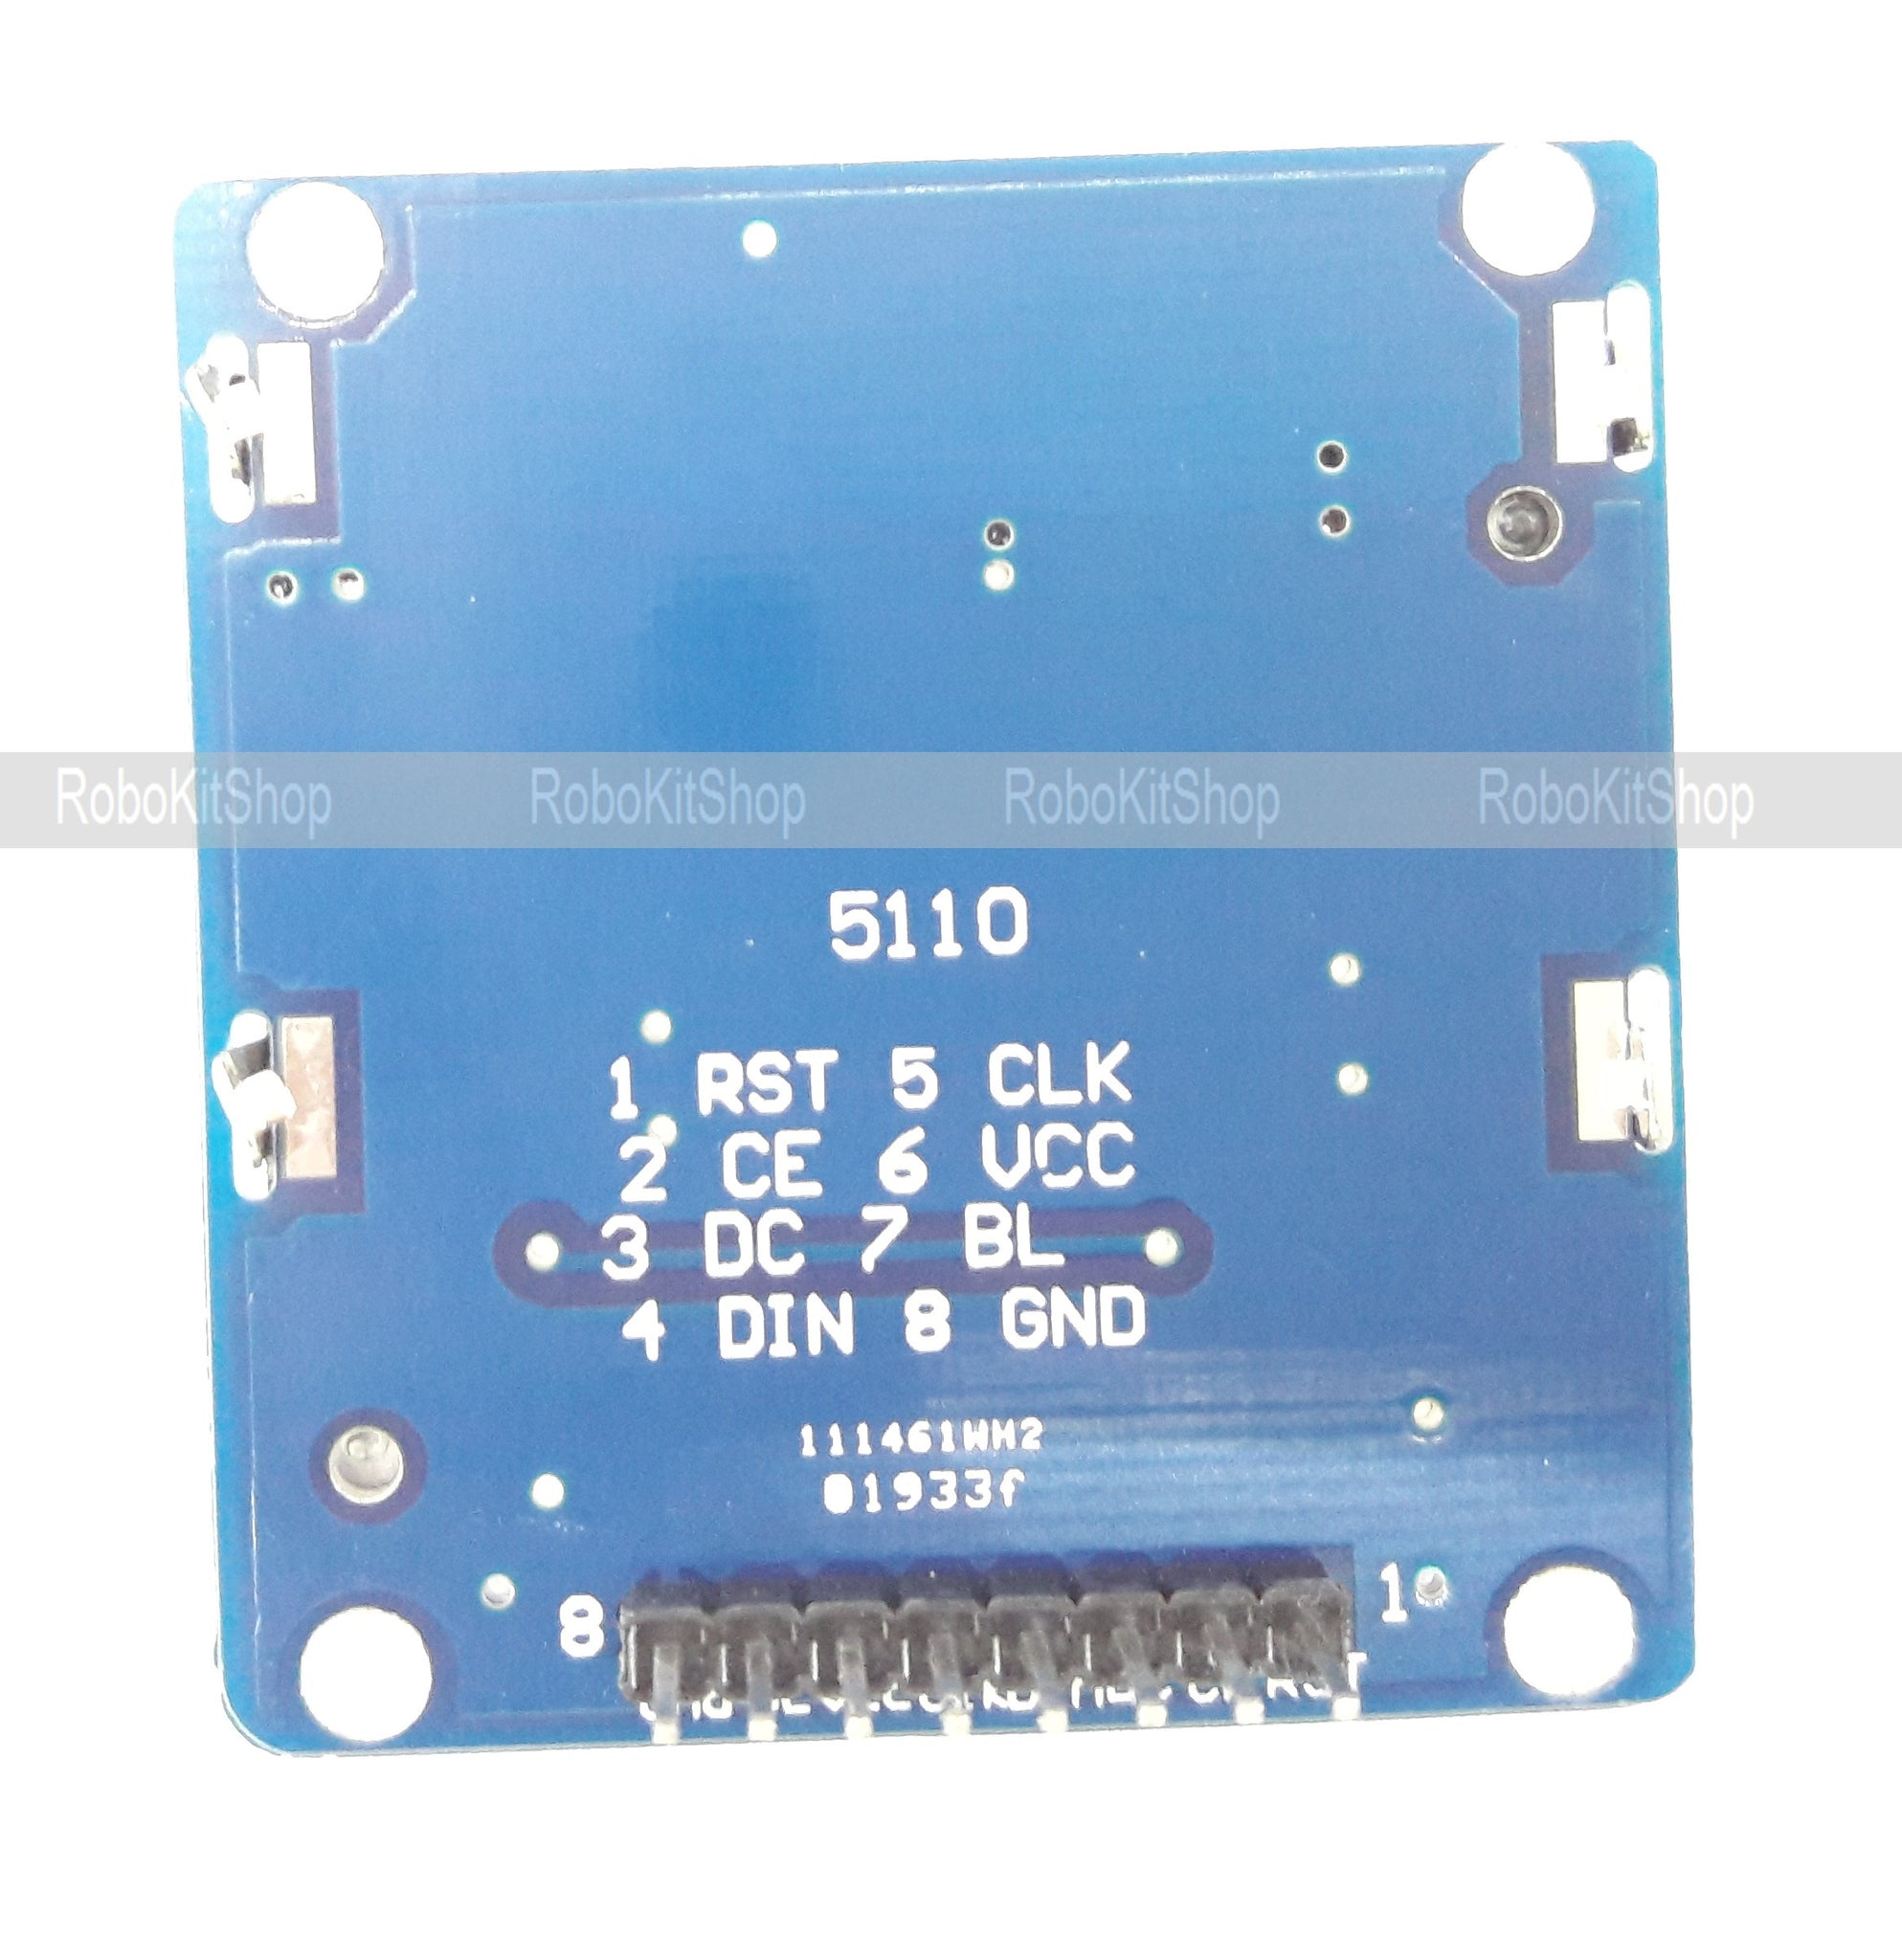 1 6 compatible NOKIA 5110 GRAPHIC LCD 84X48 display board for